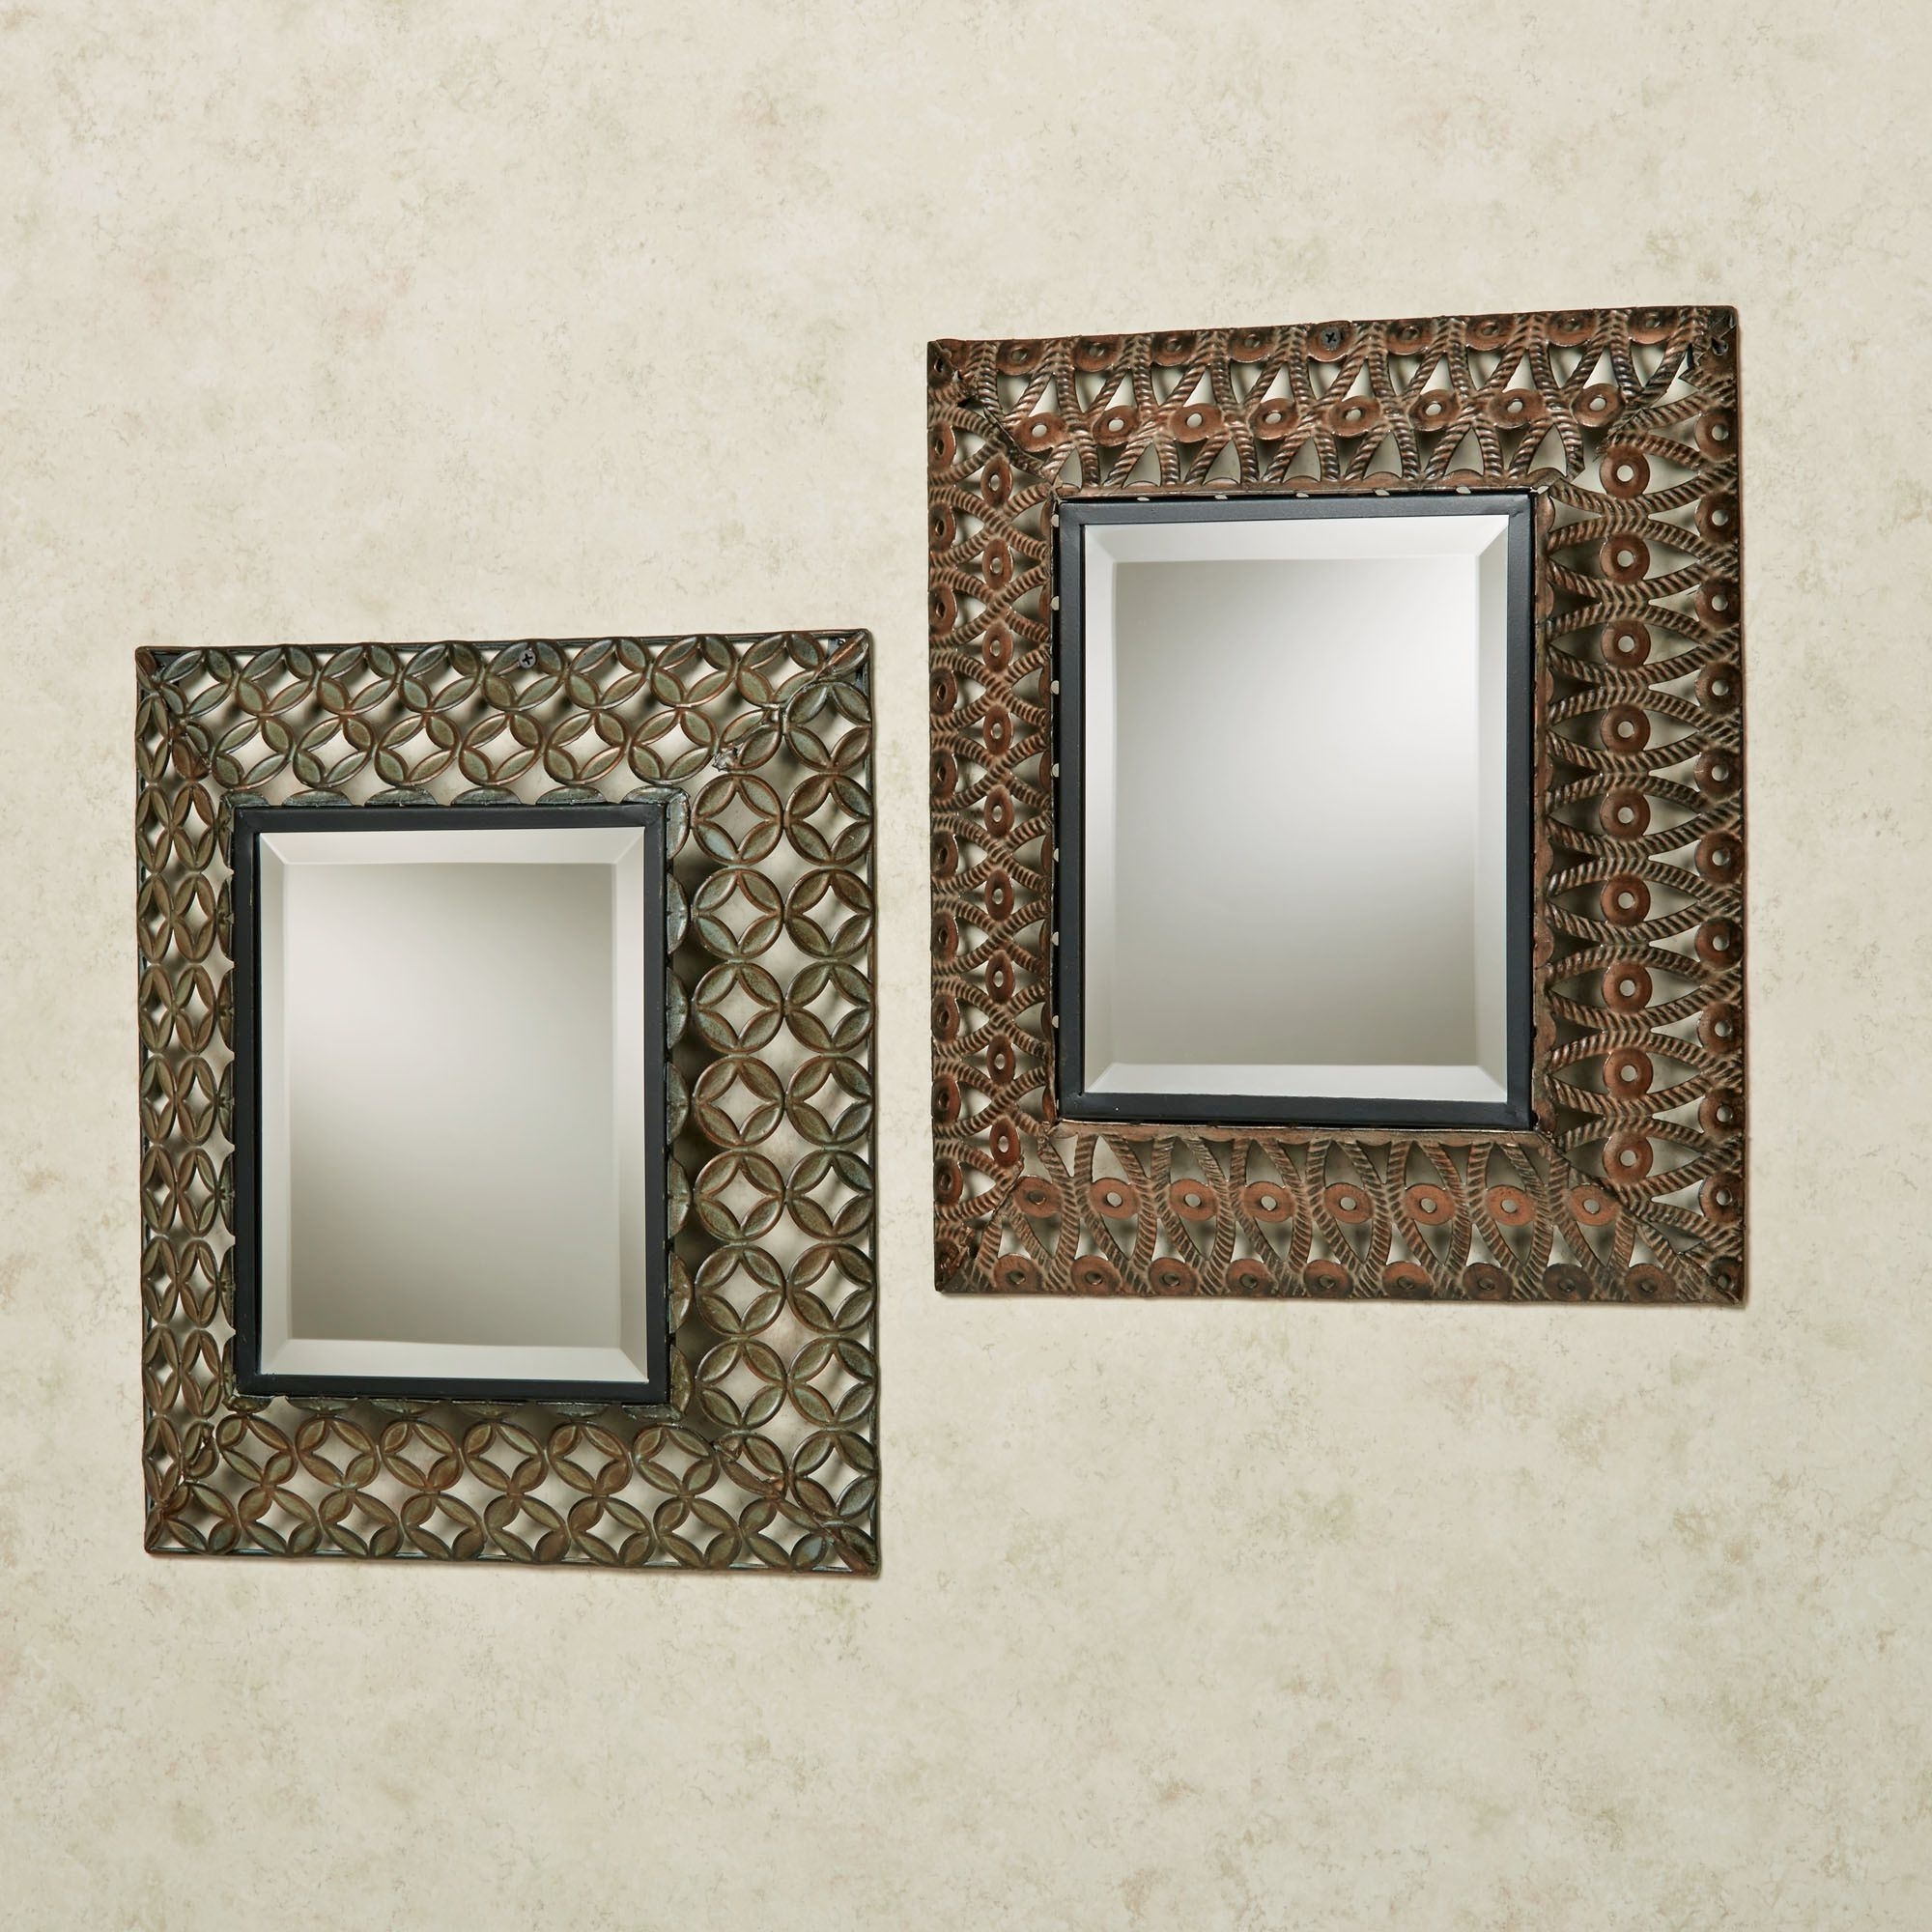 Cheap Decorative Wall Mirror Vintage Mirror Sets Wall Decor – Wall Regarding Latest Mirror Sets Wall Accents (View 3 of 15)